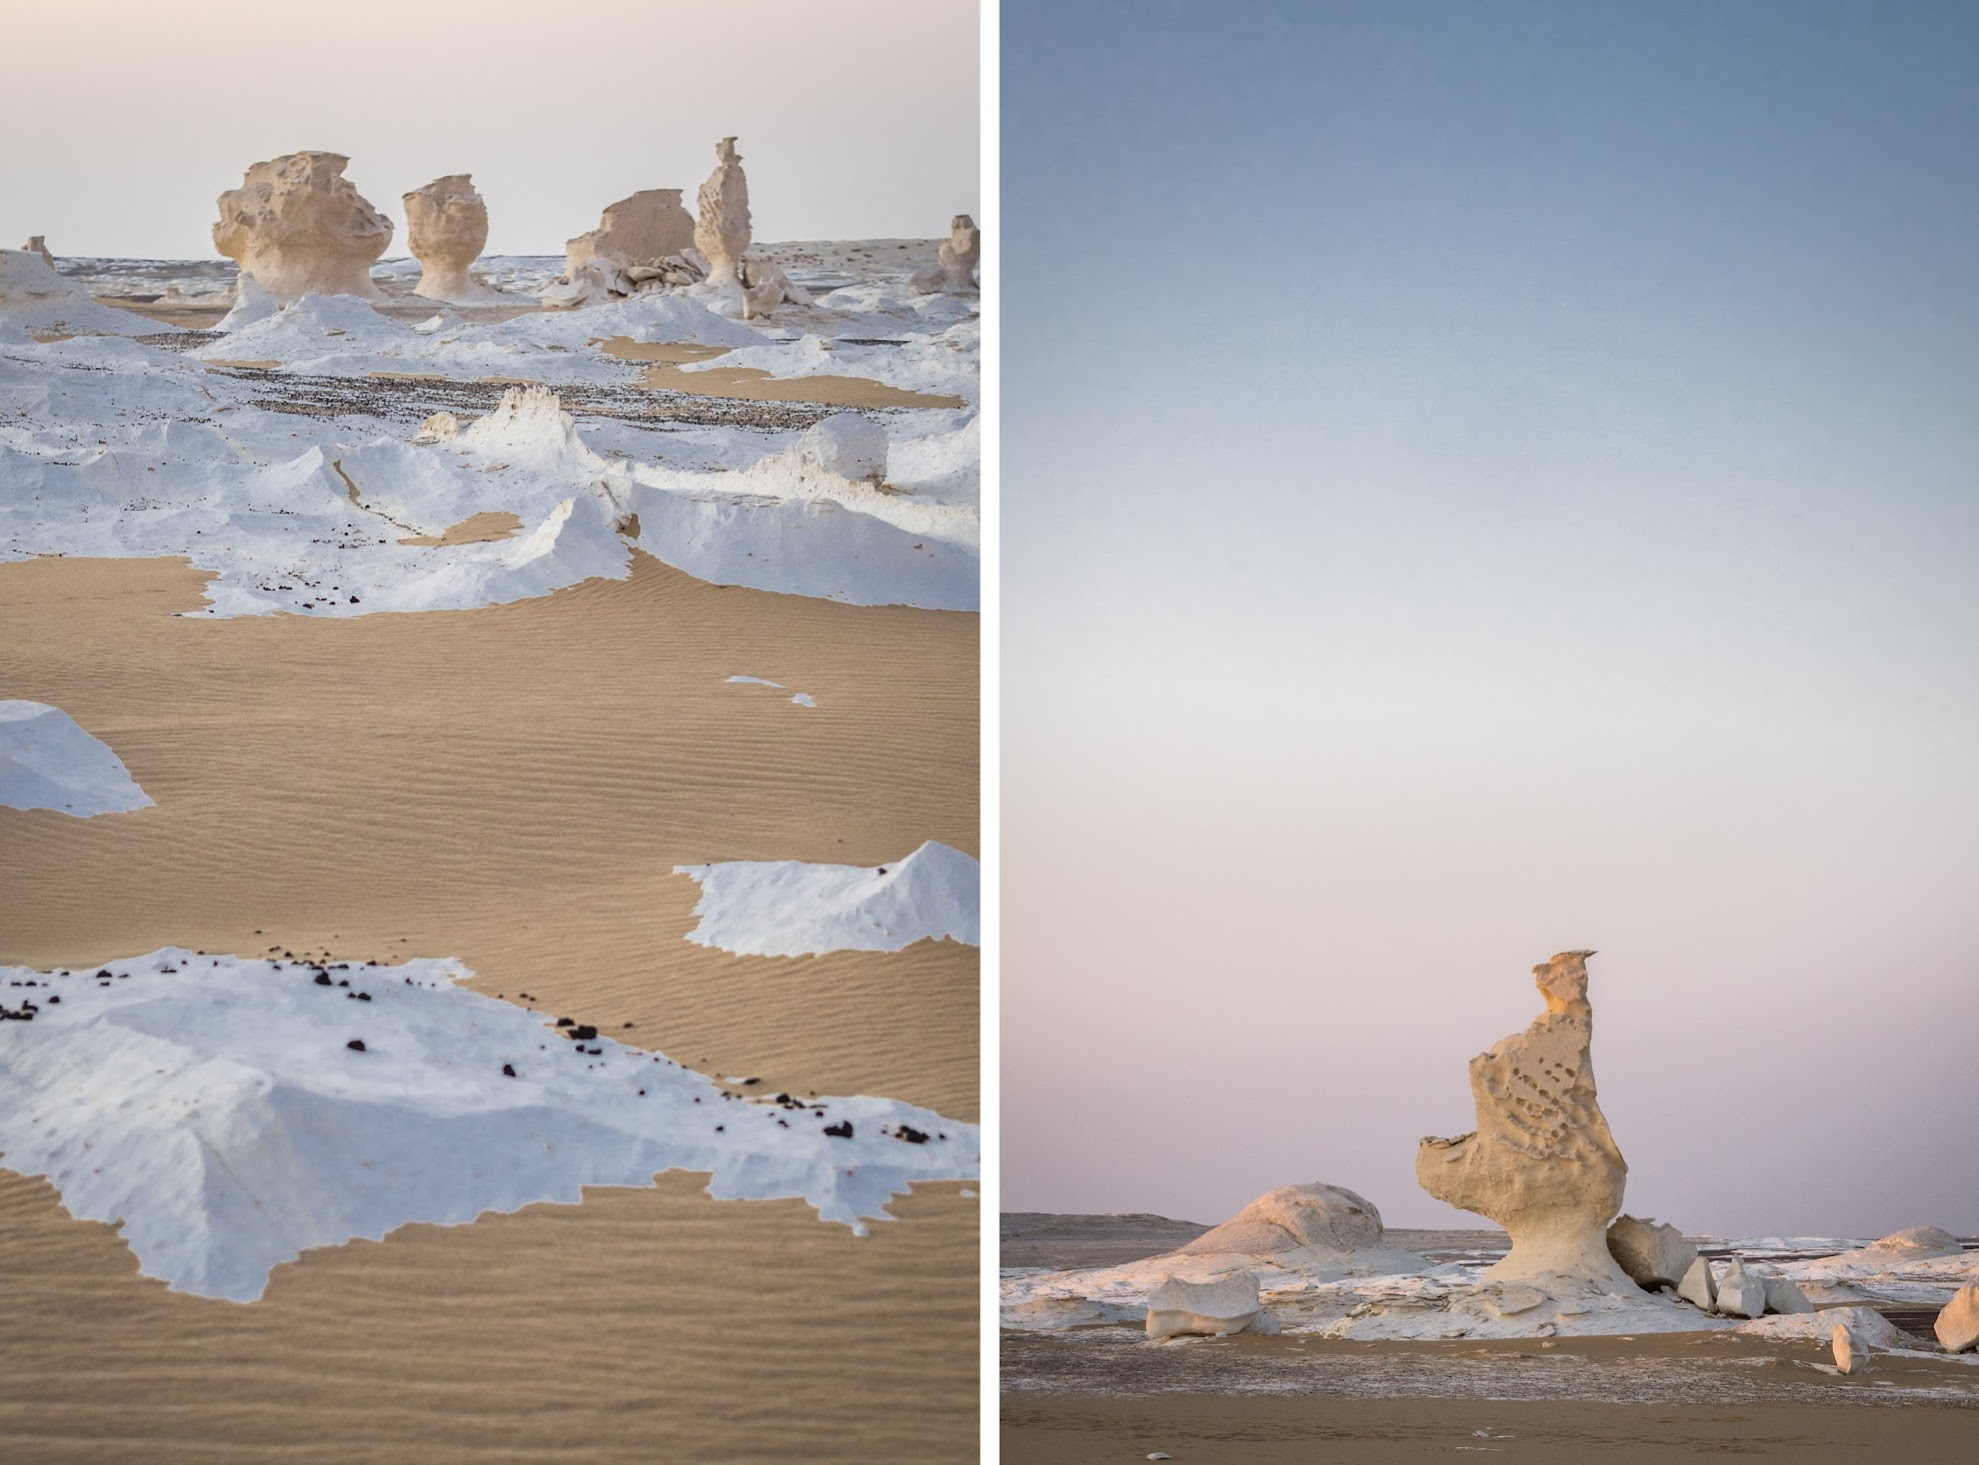 Wind and sand carved these formations out of soft chalk deposit